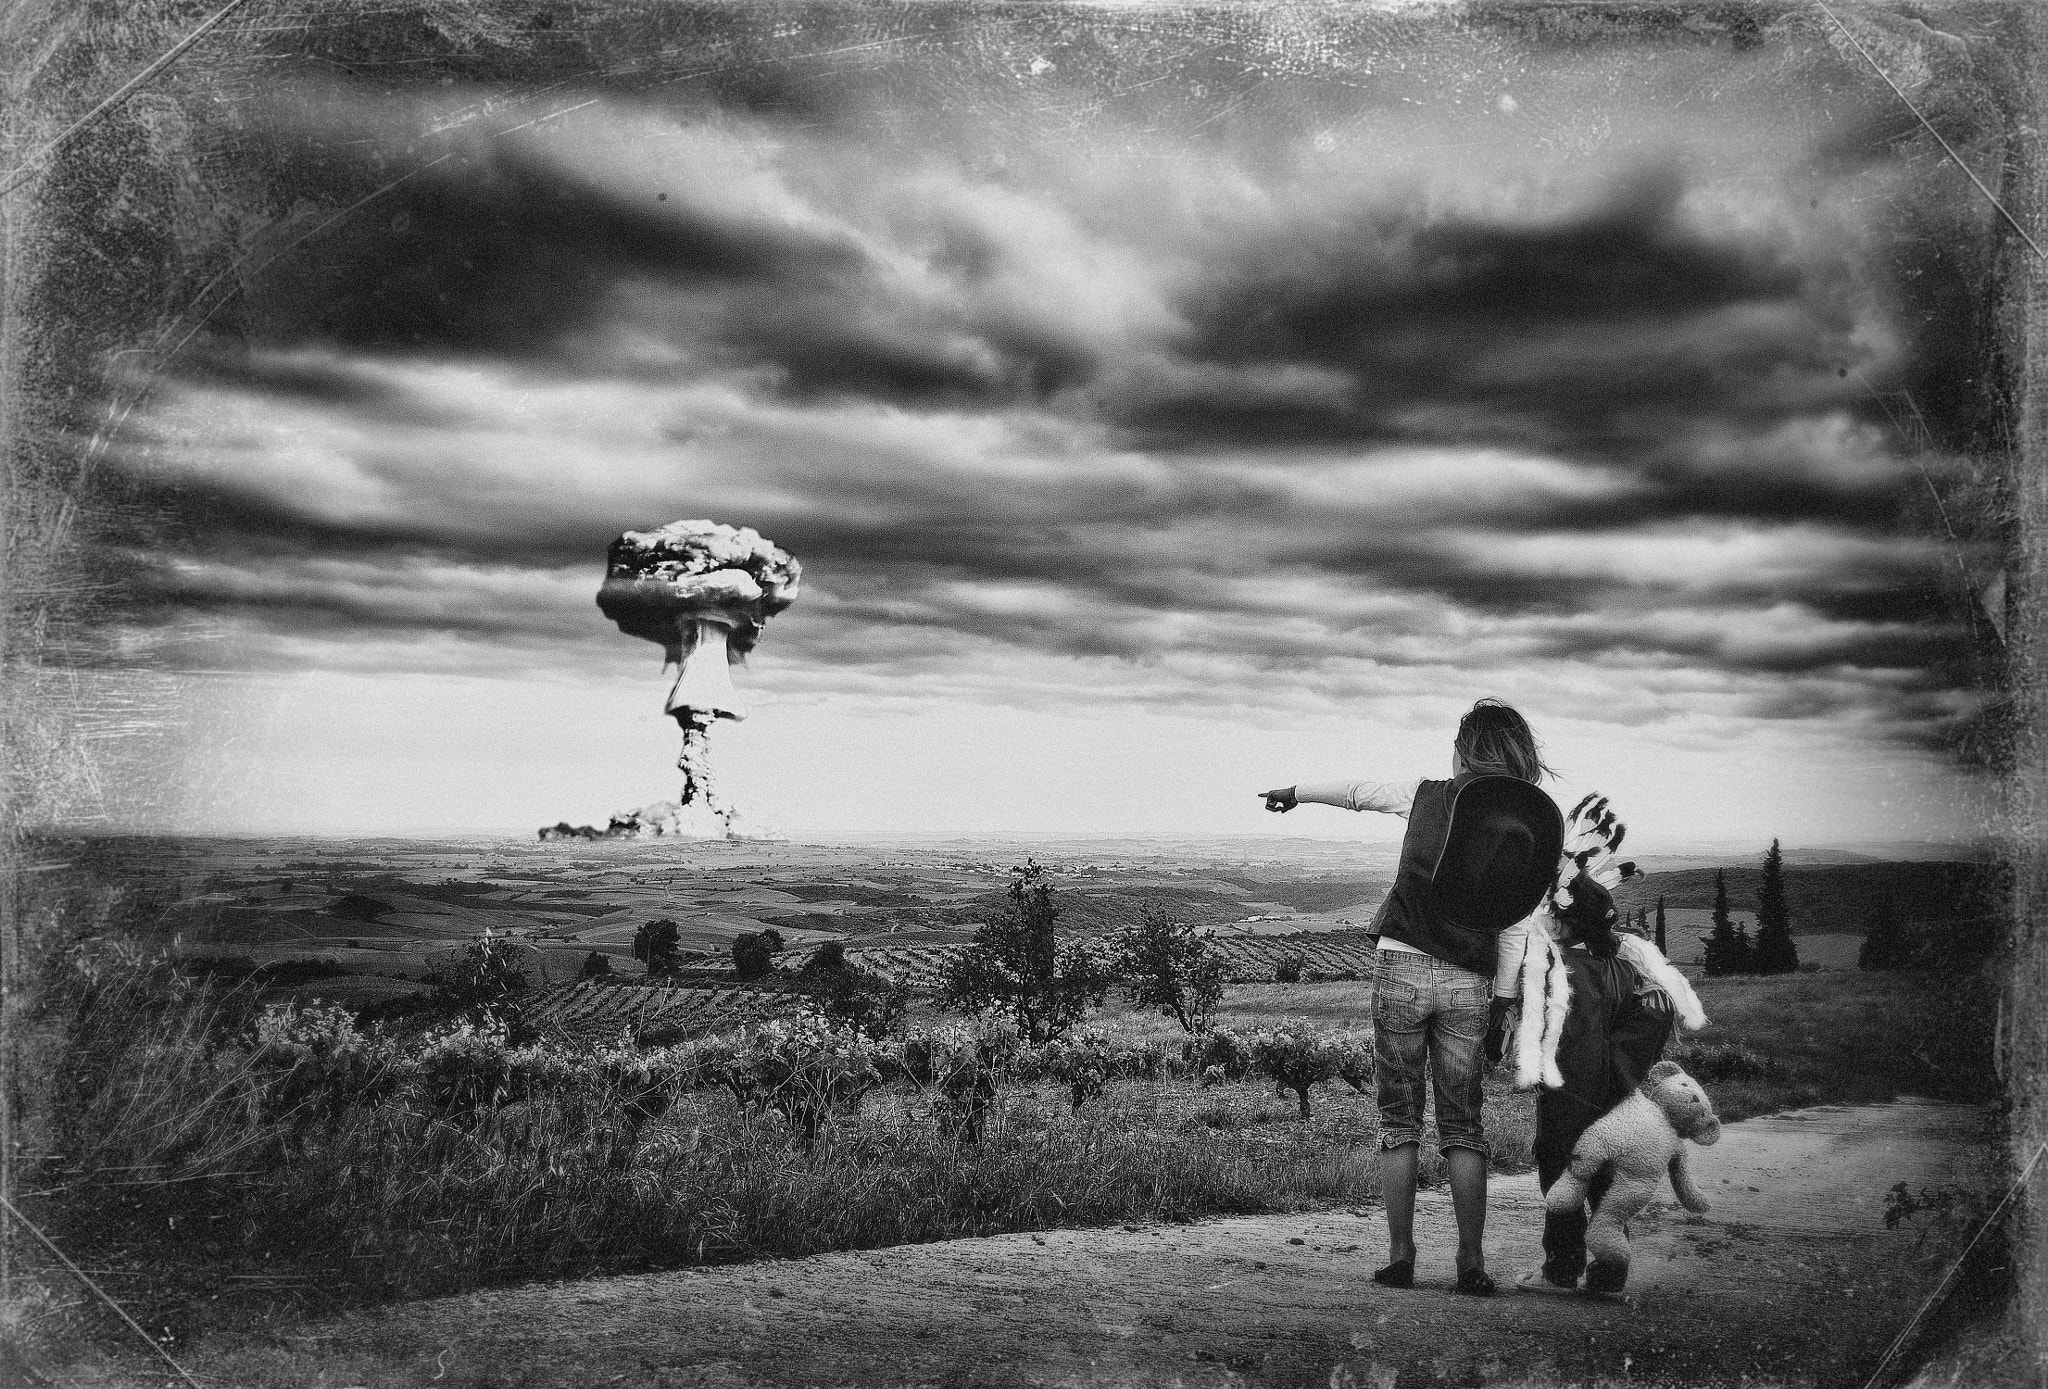 Photograph Mother do you think they'll drop the bomb? by David Tremblay on 500px